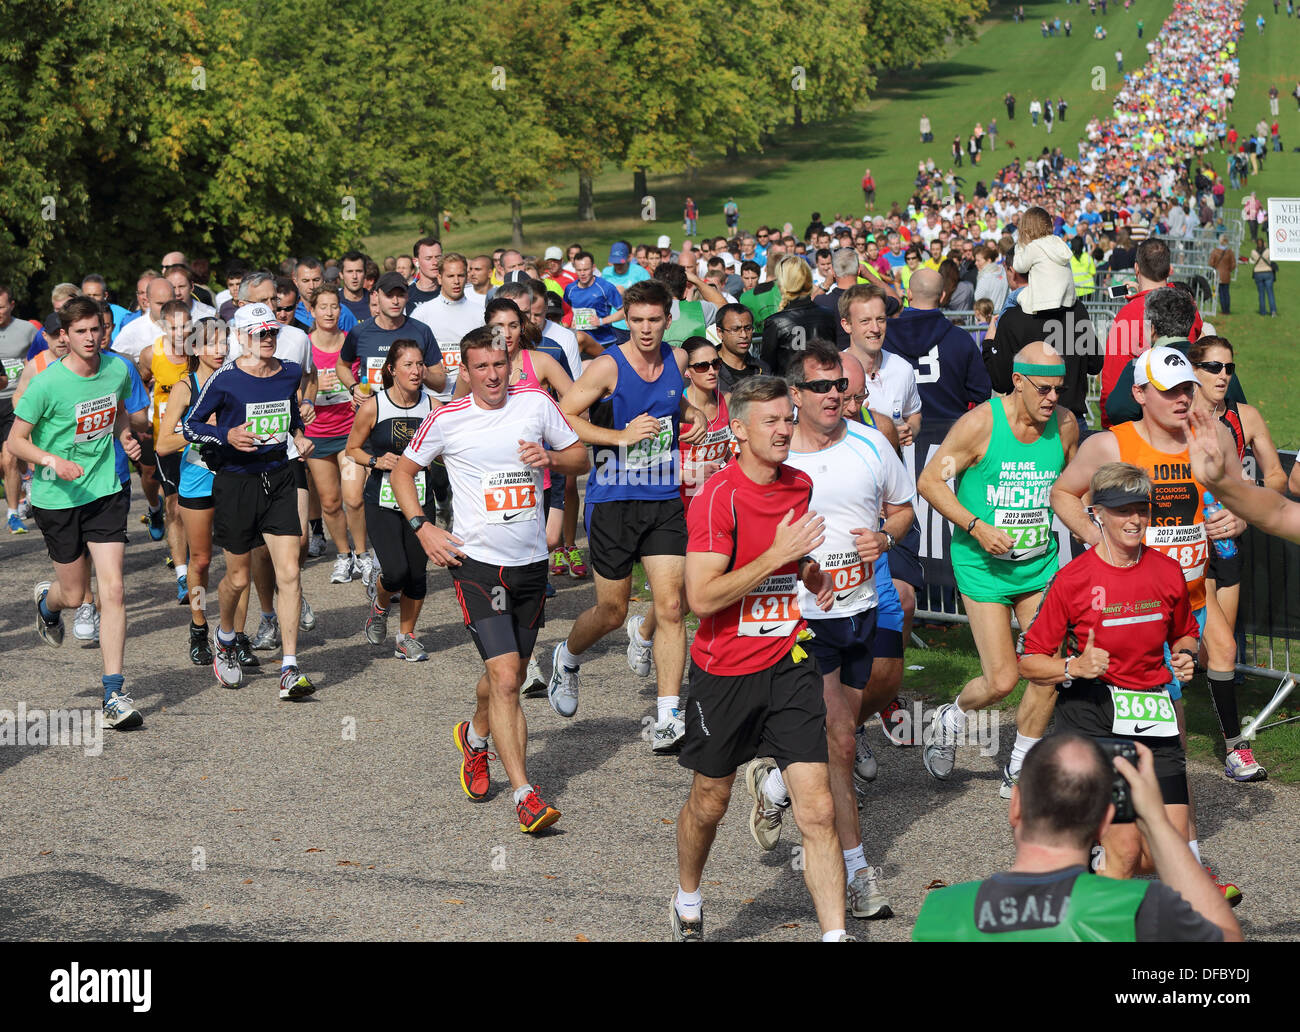 Runners in the 2013 Windsor Half Marathon in Windsor Great Park, Berkshire - Stock Image